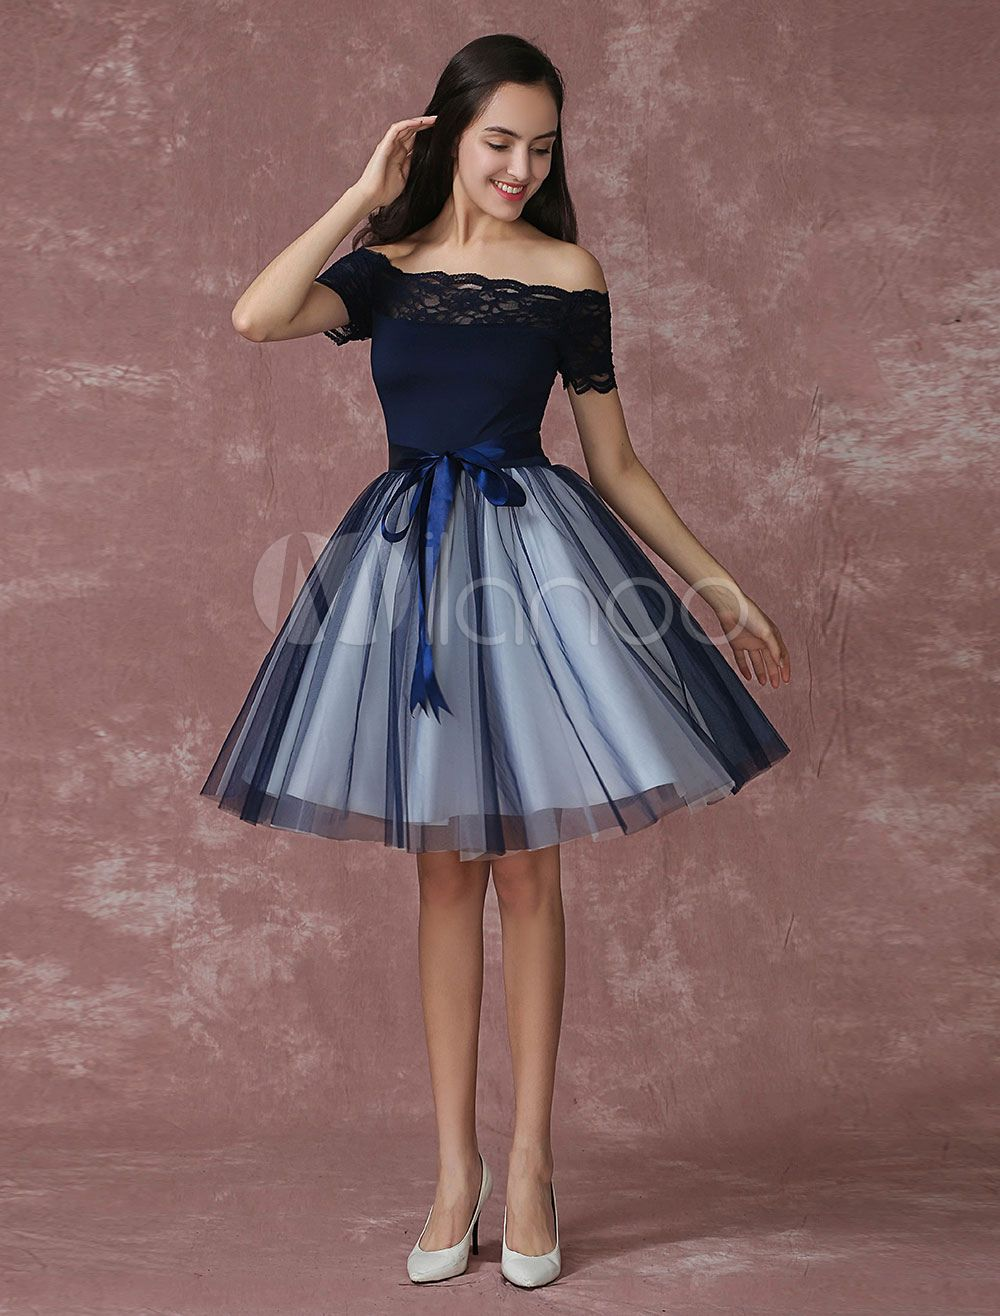 8d7b812926 Tulle Homecoming Dress Lace Off The Shoulder Prom Dress A Line Knee Length  Cocktail Dress With Detachable Bow Sash